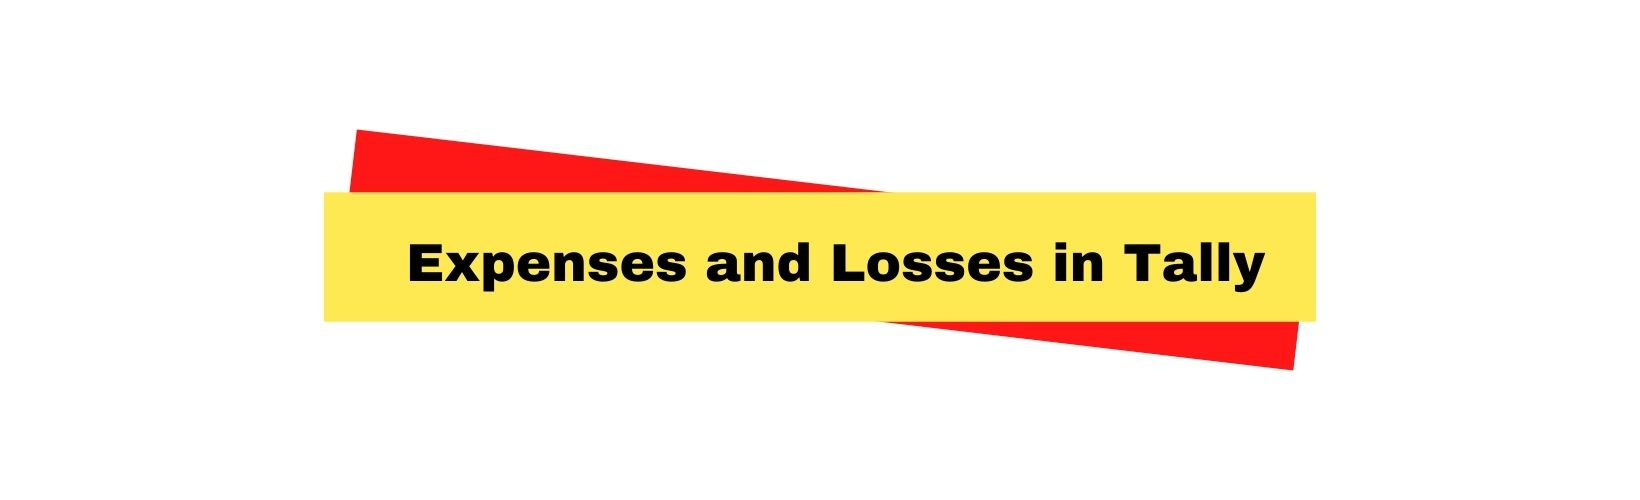 Expenses and Losses in Tally